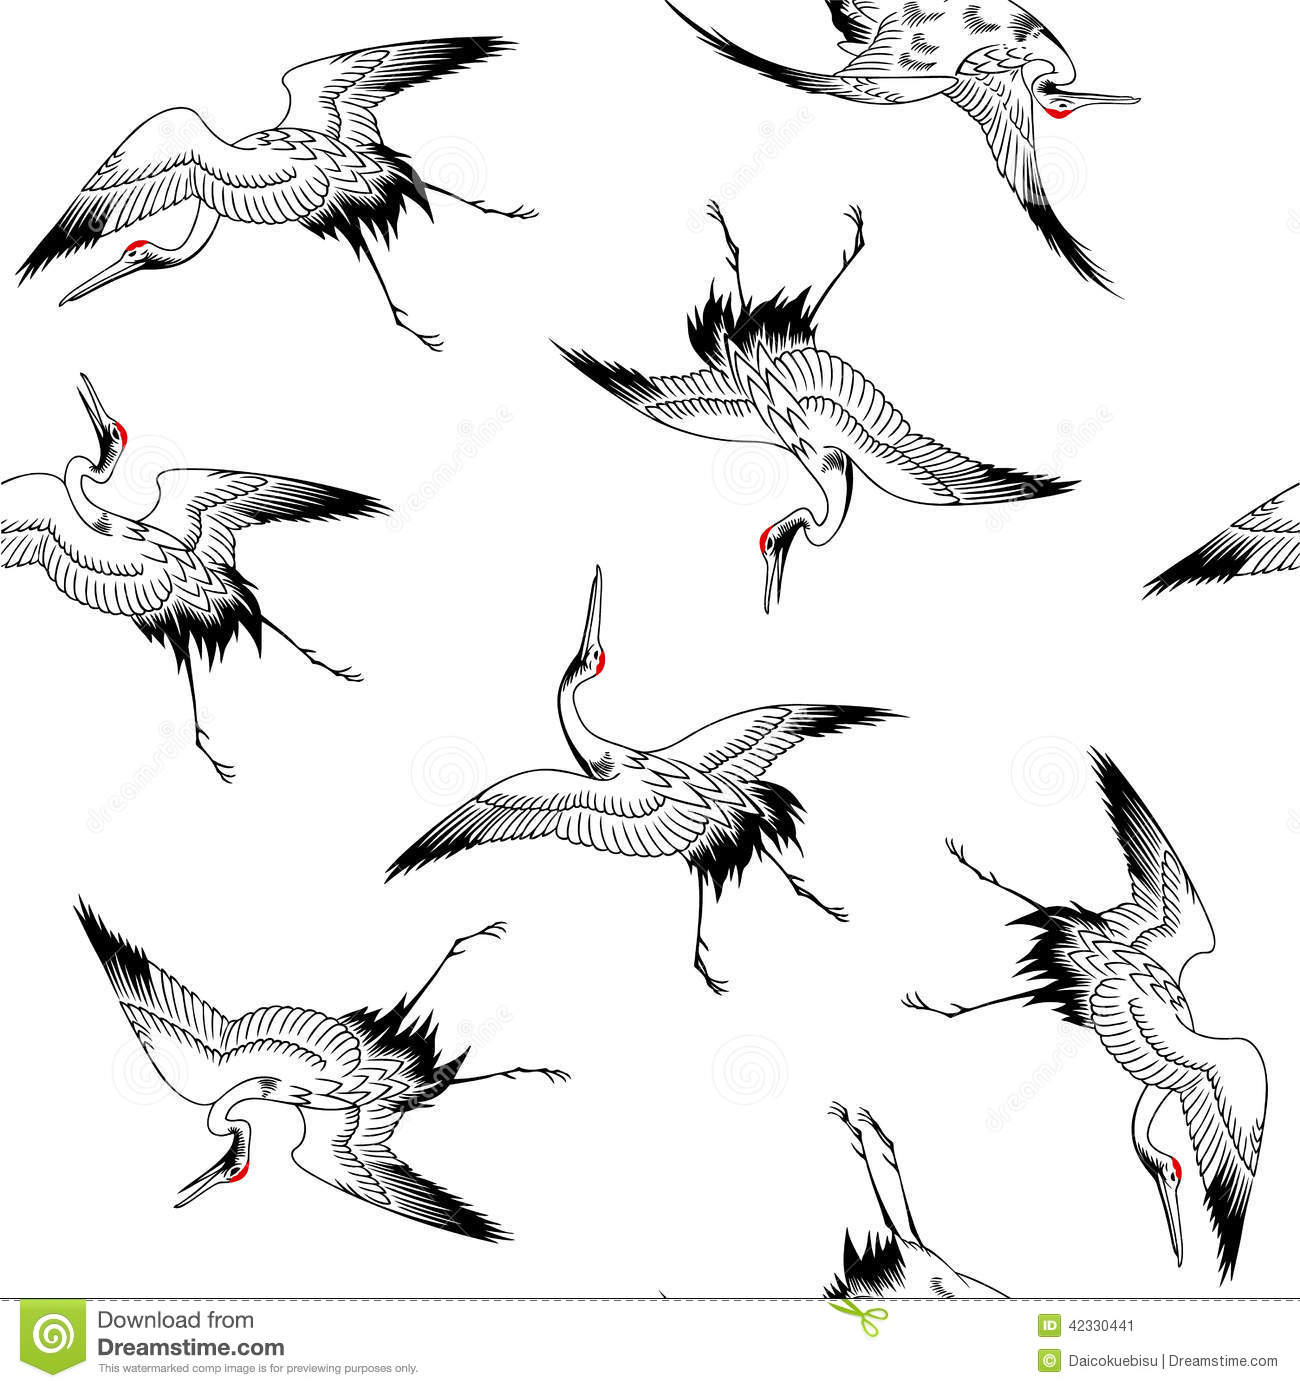 Japanese Crane clipart #17, Download drawings